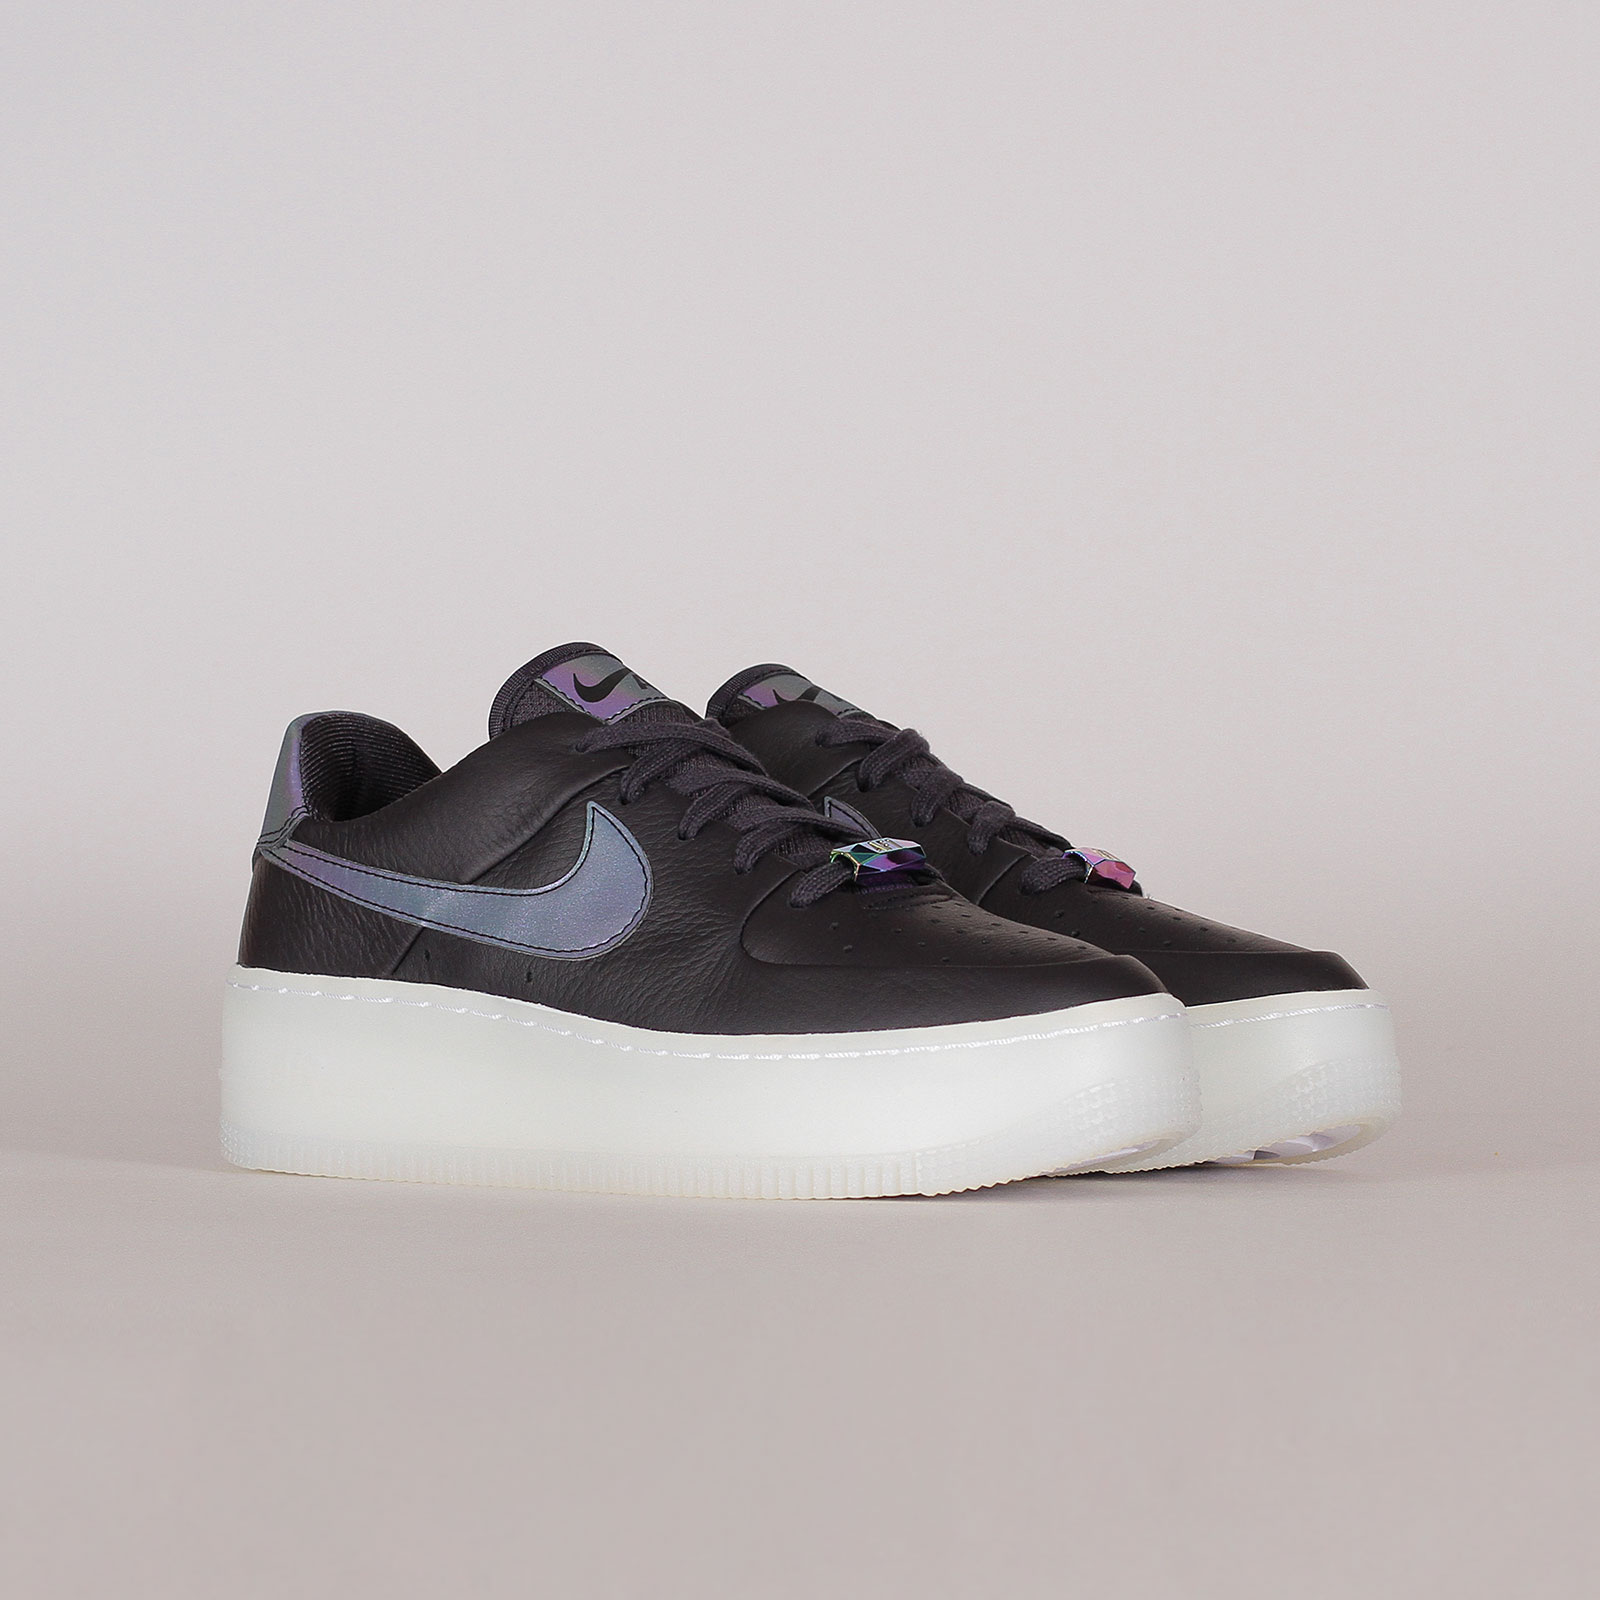 Nike Womens Air Force 1 Sage Low LX (AR5409 004)